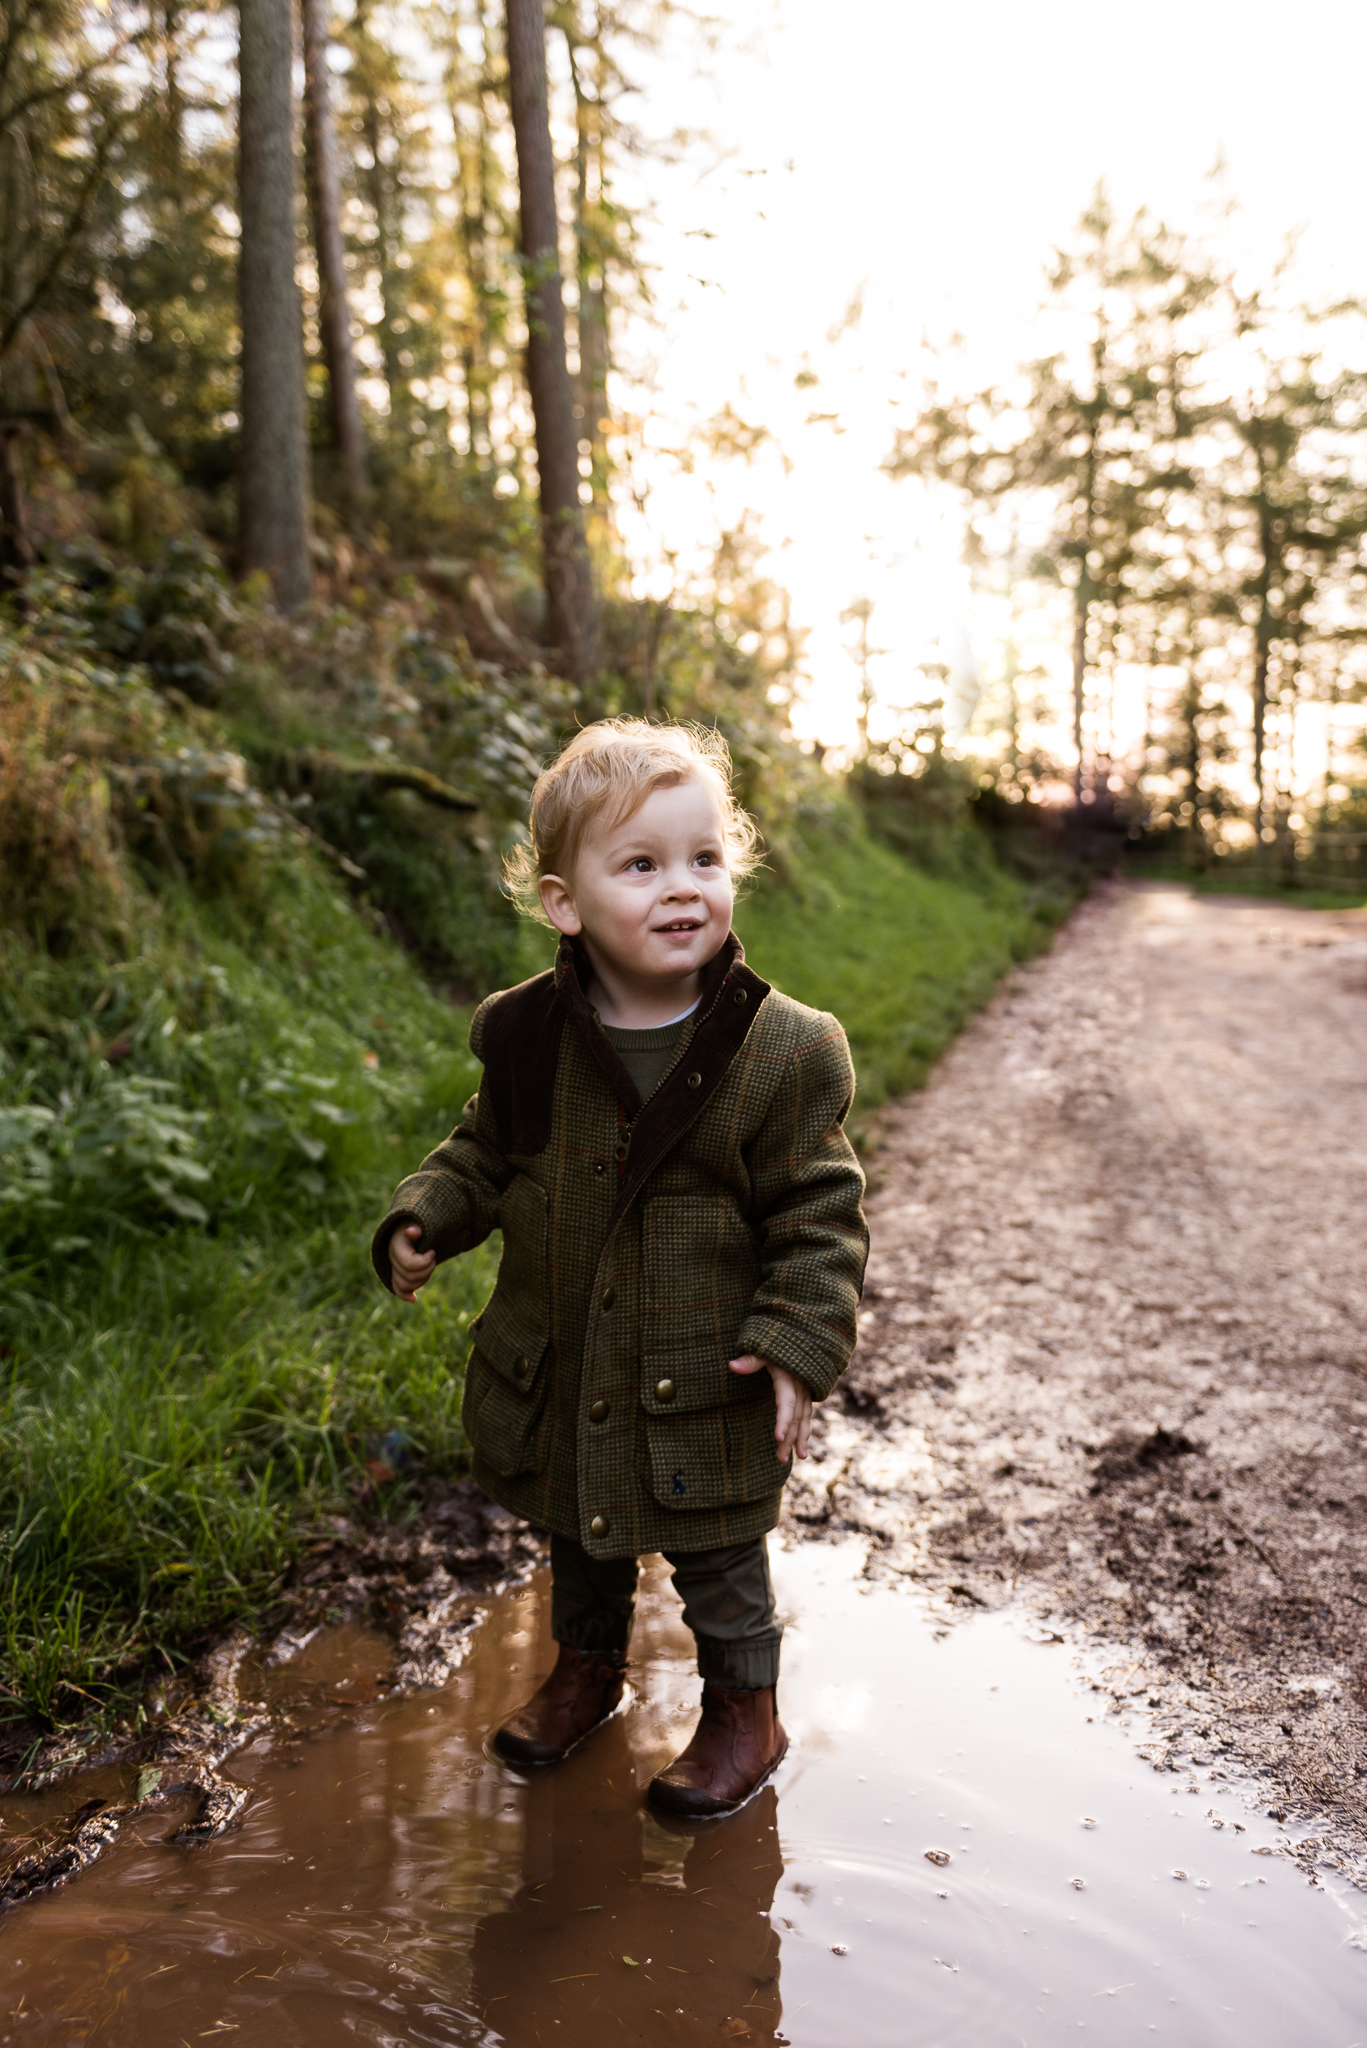 Autumn Documentary Lifestyle Family Photography at Clent Hills, Worcestershire Country Park countryside outdoors nature - Jenny Harper-20.jpg